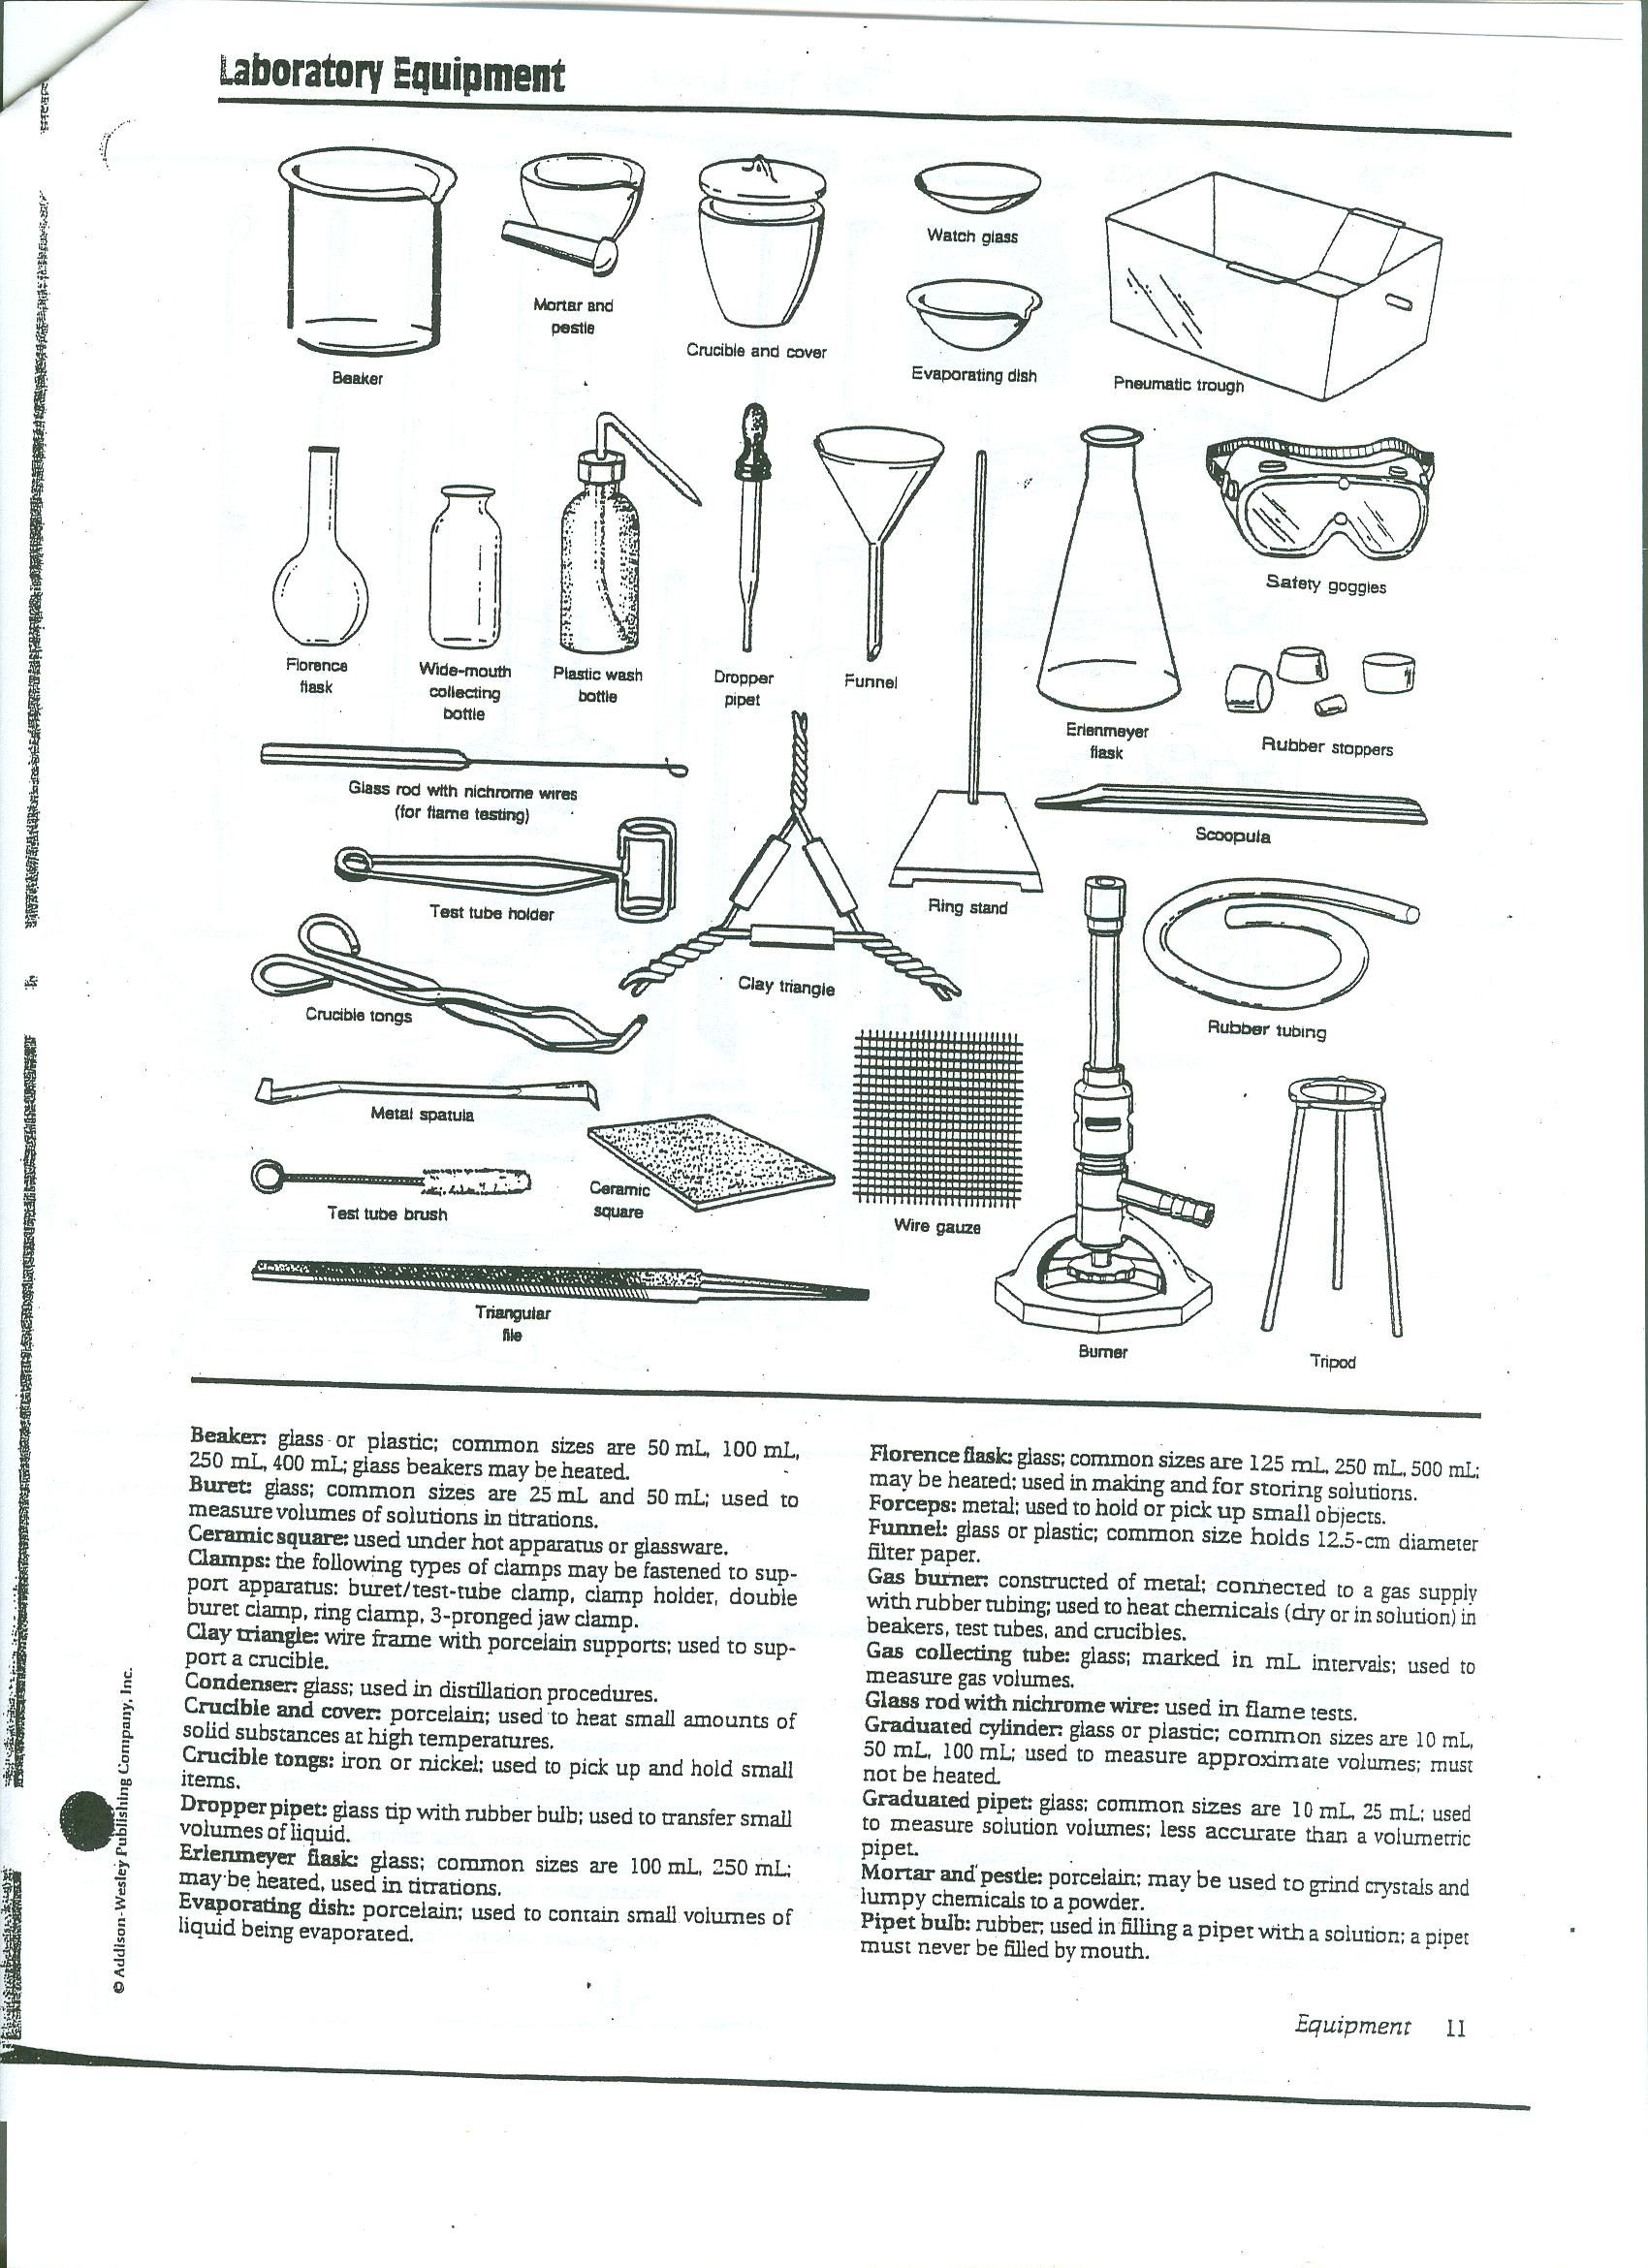 Worksheets Biology Laboratory Equipment Names chemistry lab equipment bing images pinterest images